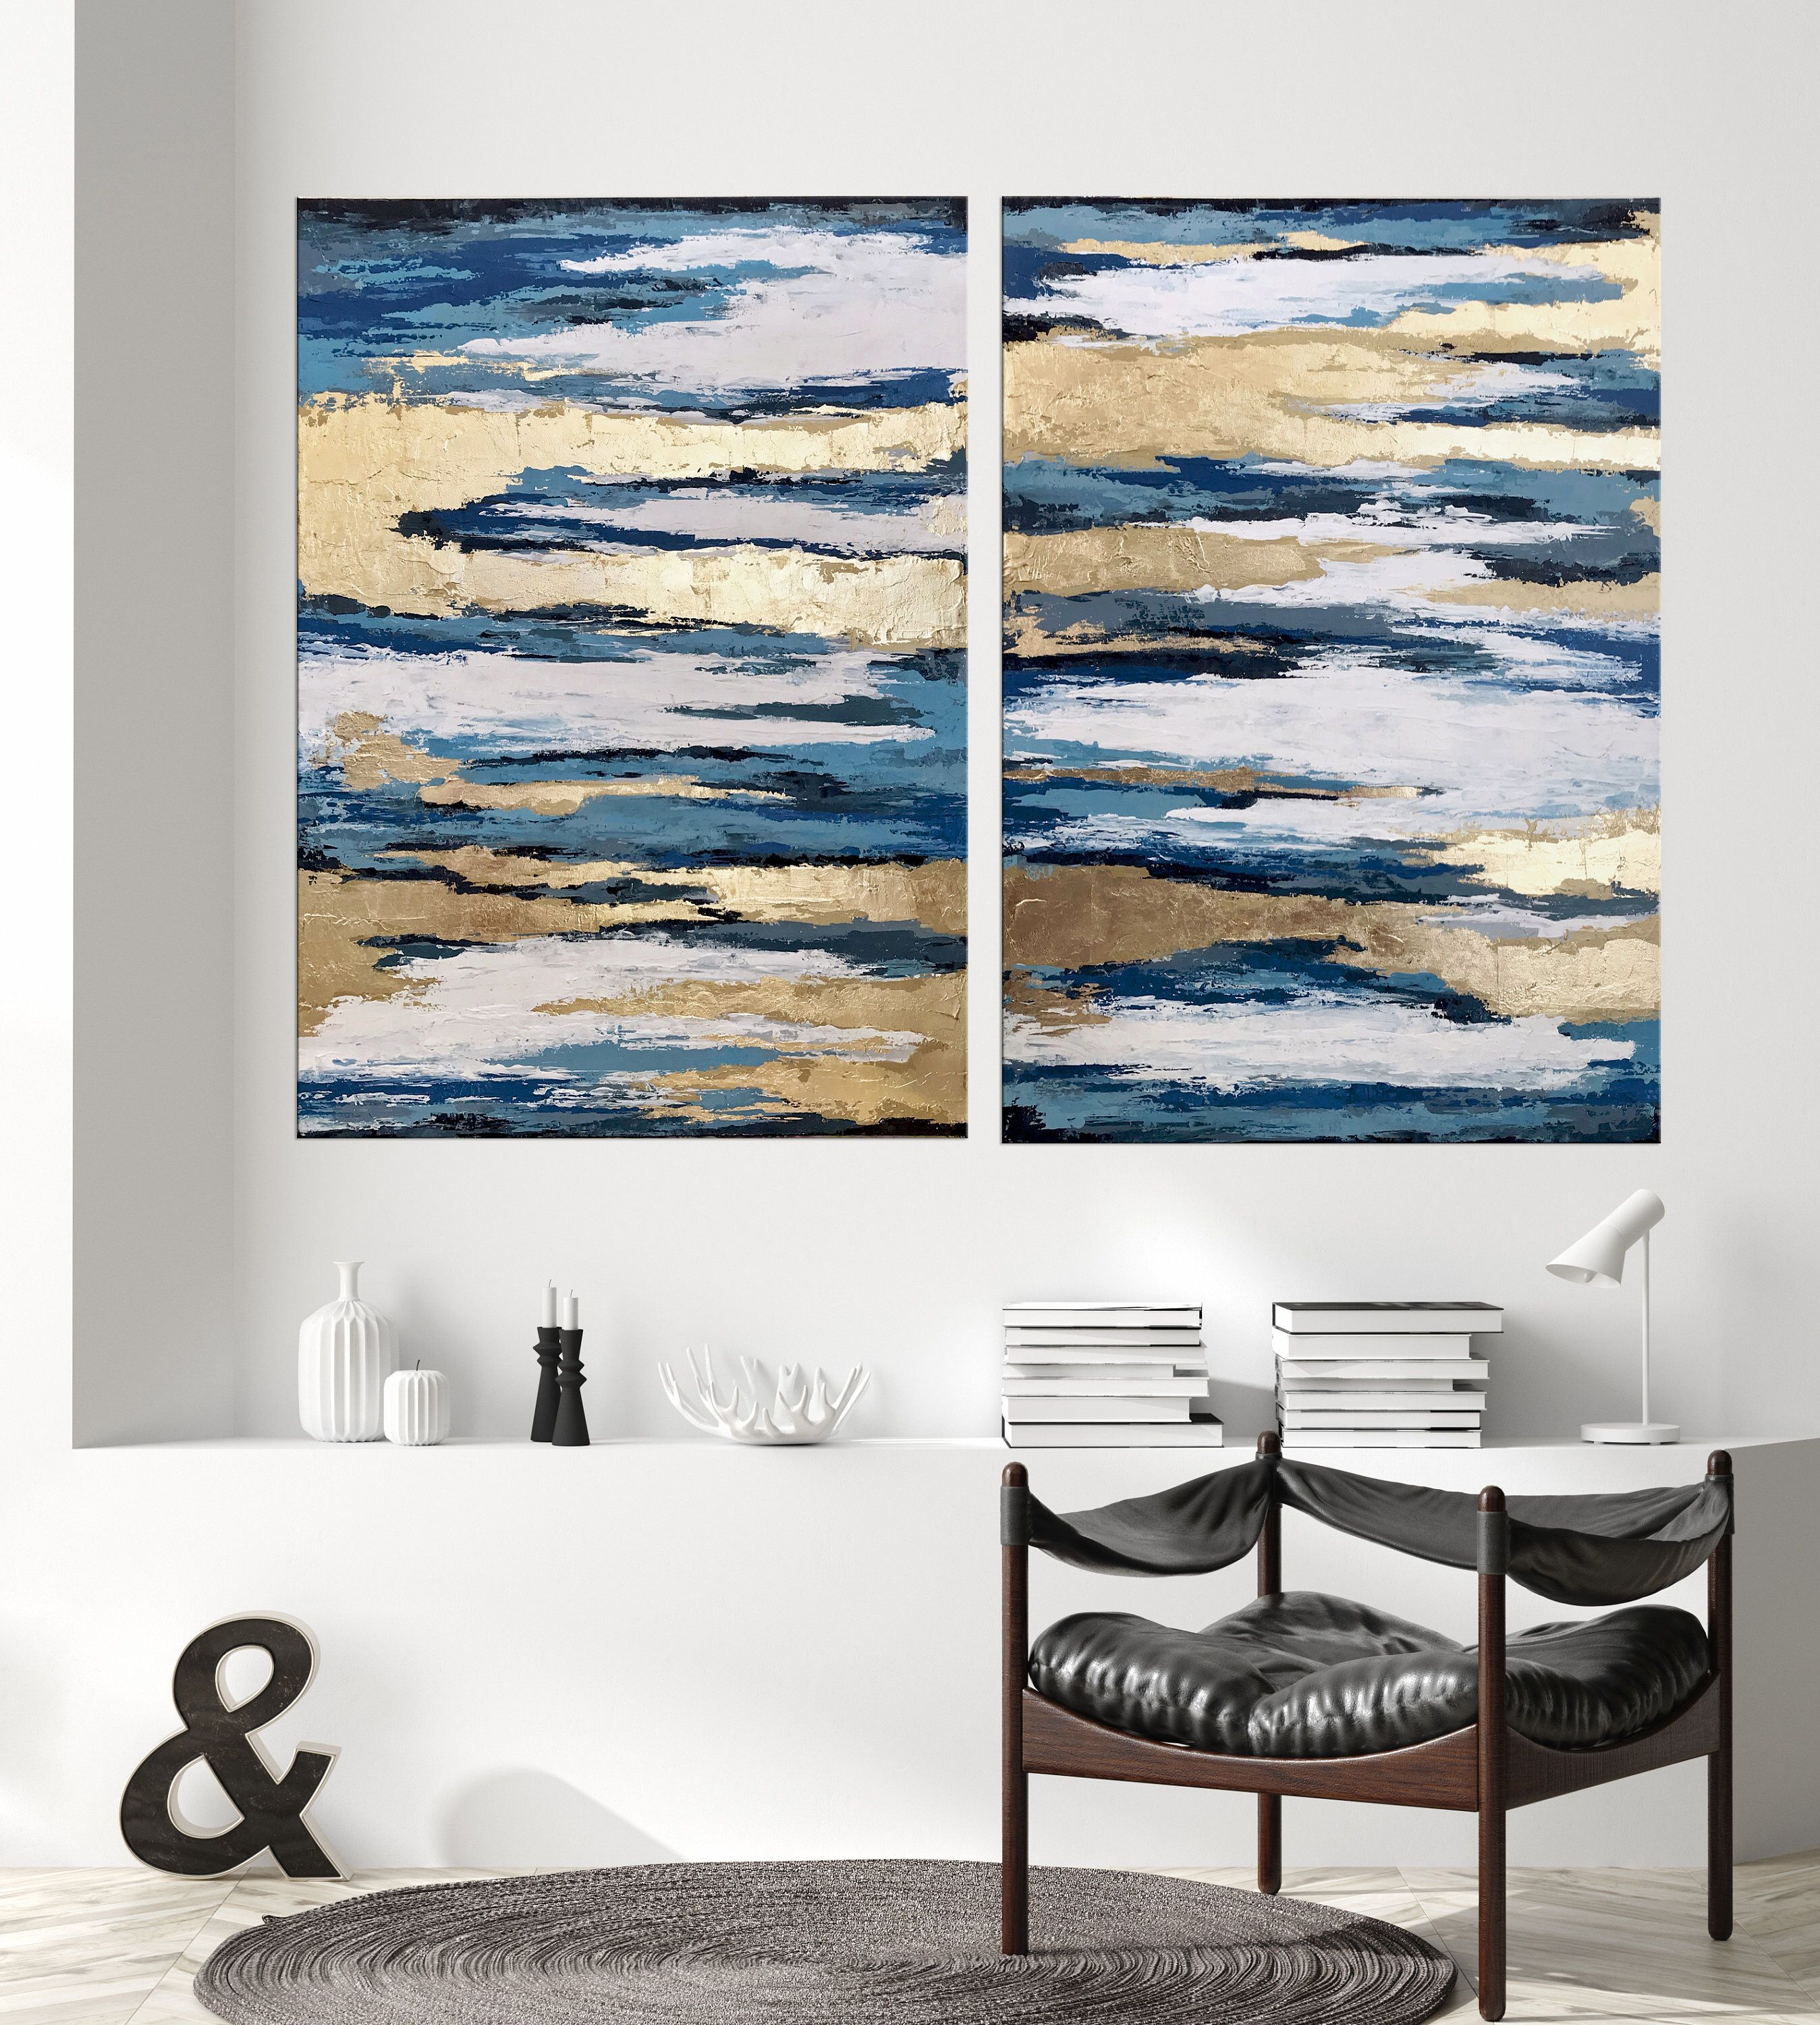 Gold Abstract Art Diptych Wall Art Large Blue Teal Abstract Etsy Diptych Wall Art Living Room Art Multi Panel Art